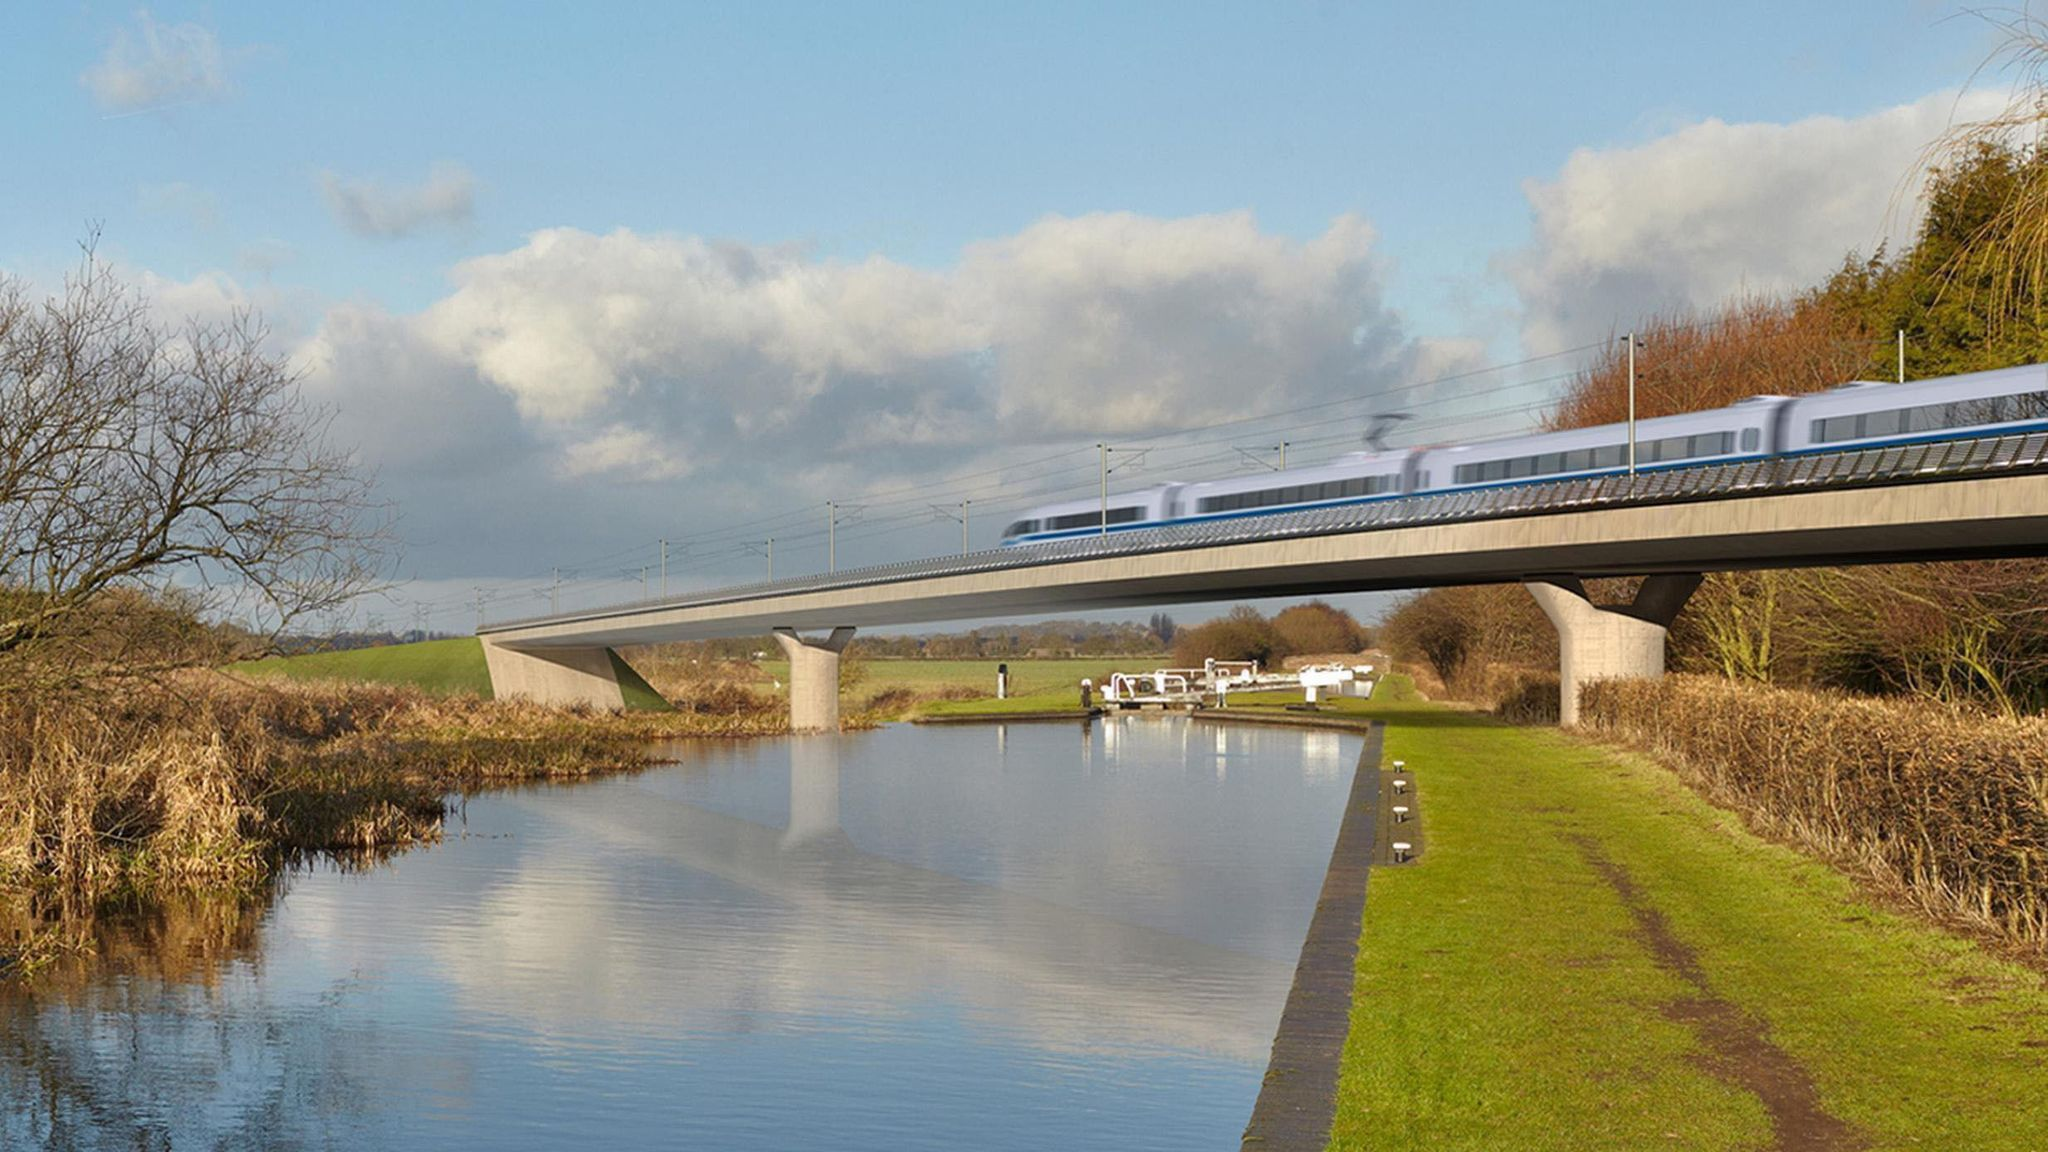 CBI calls for no more 'dither or delay' on HS2 rail link